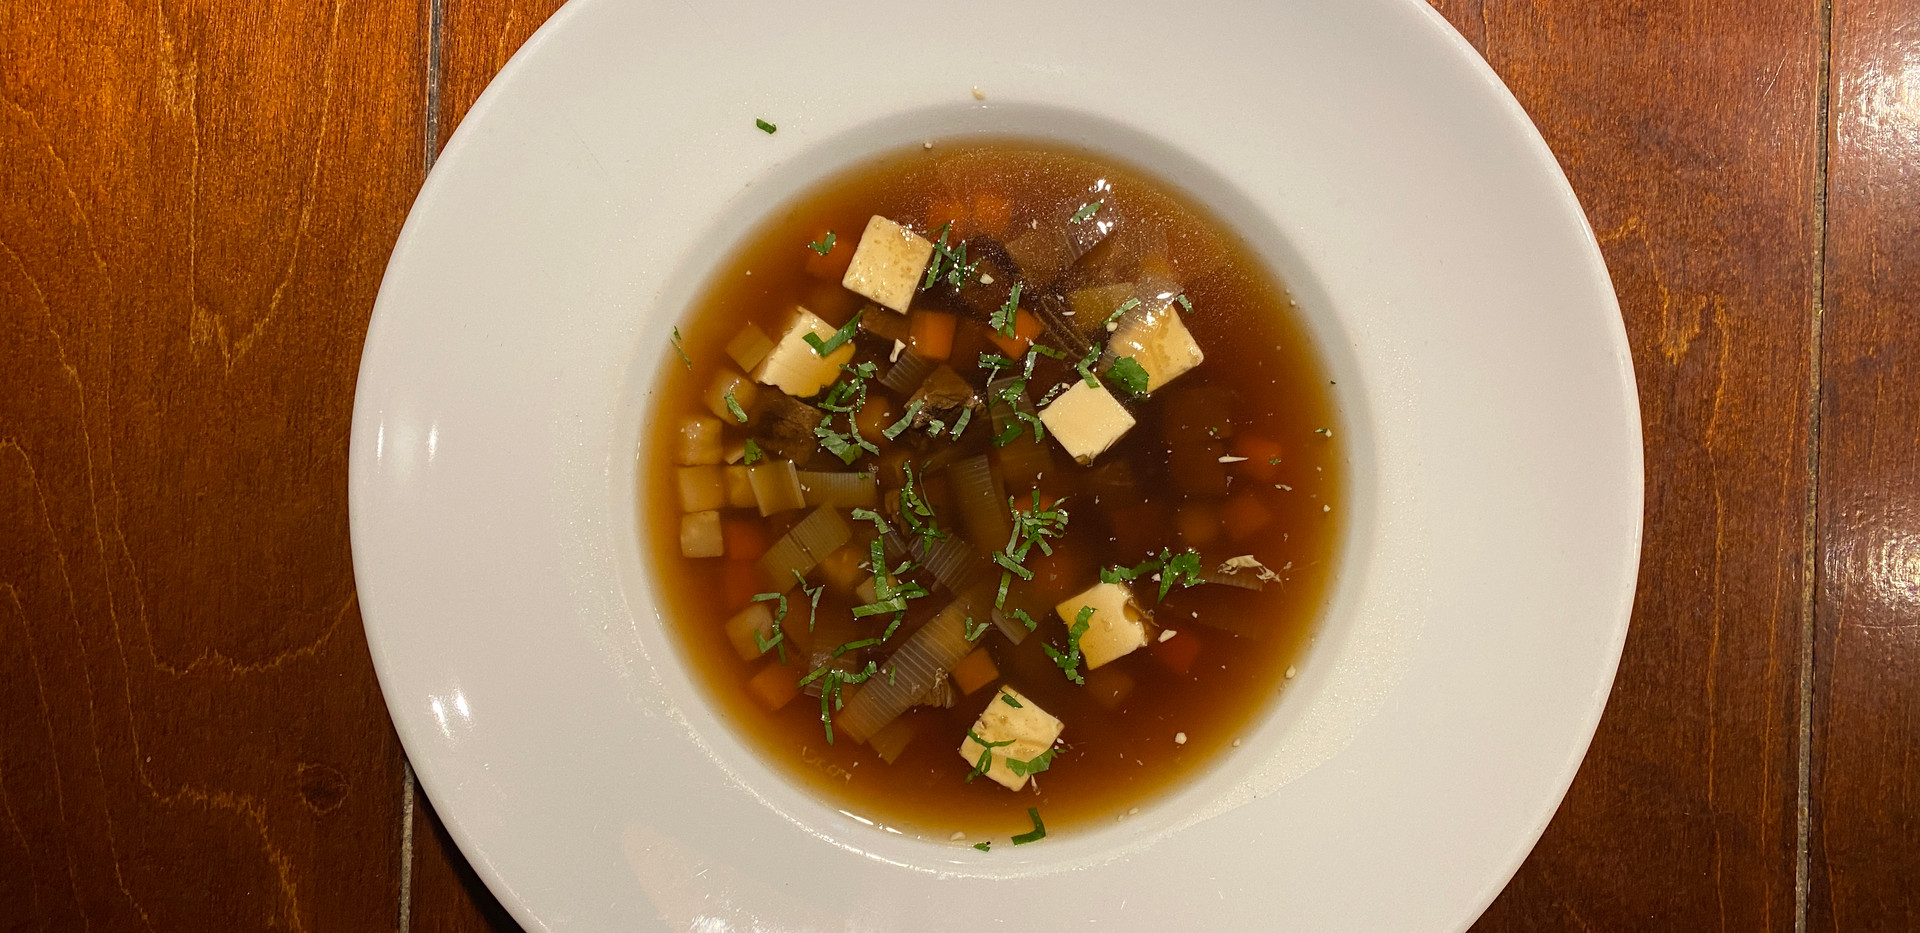 Rinderconsomme